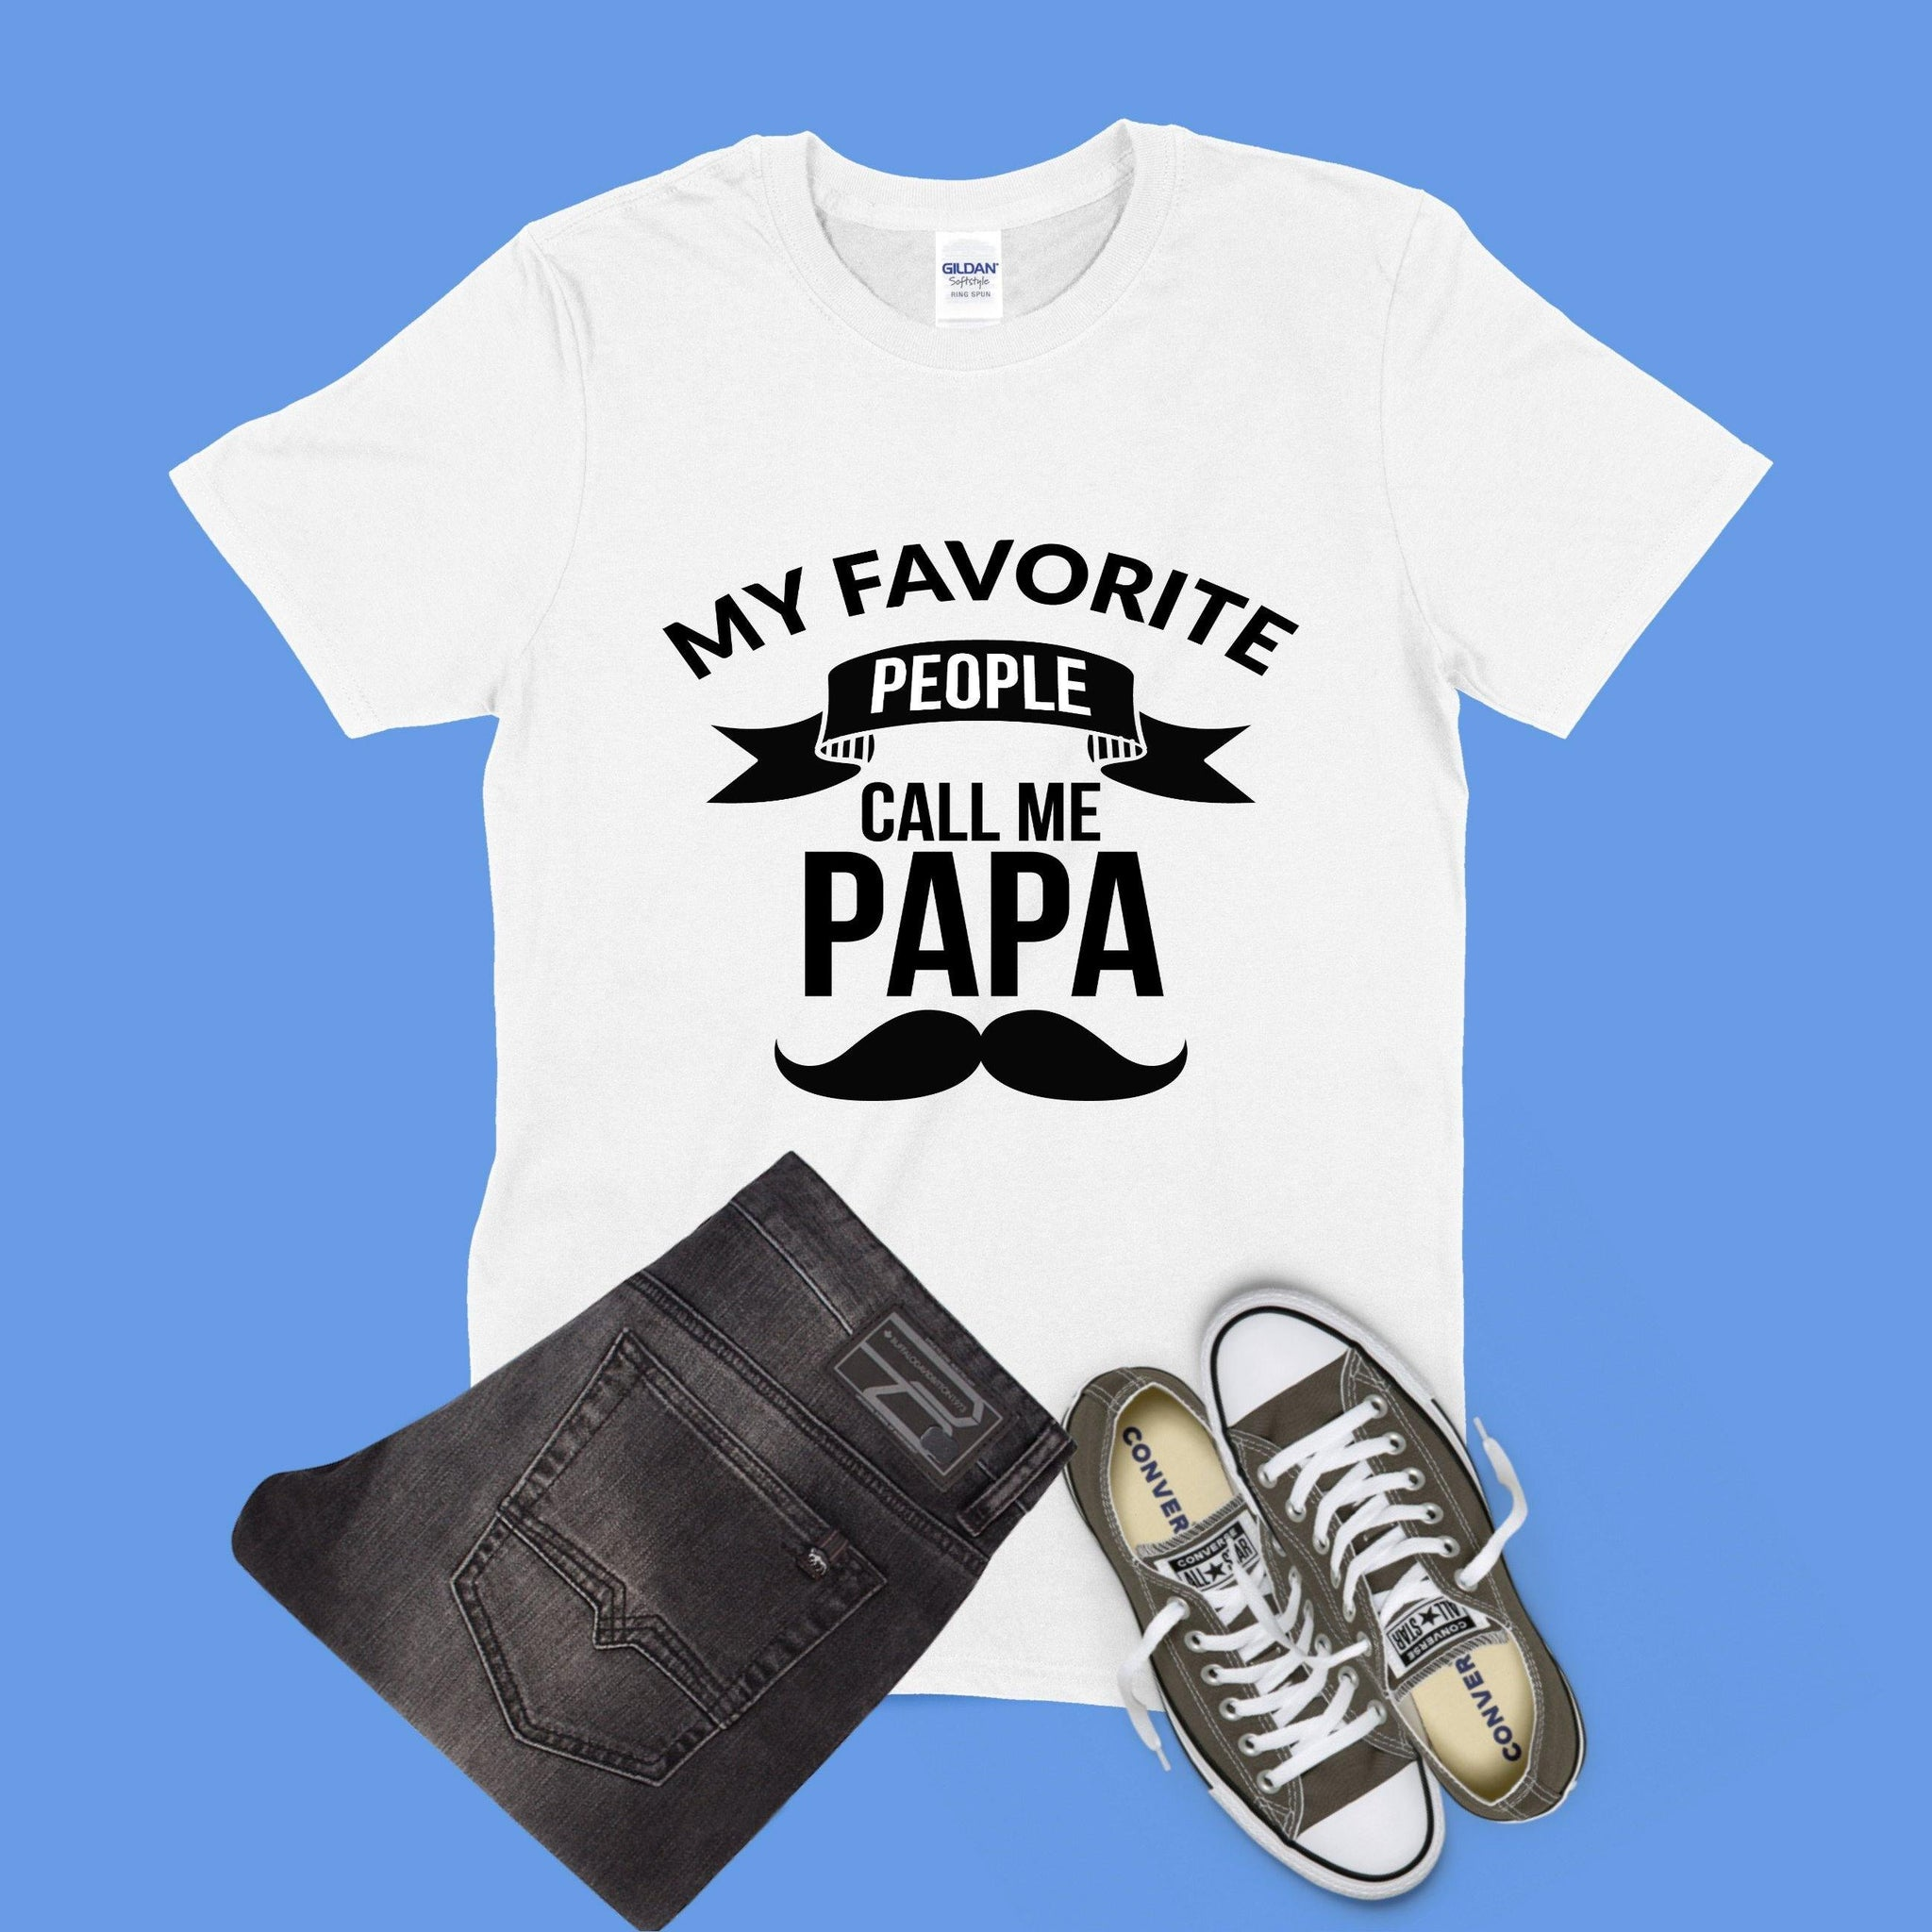 Mens fathers day t-shirts - Sew Tilley